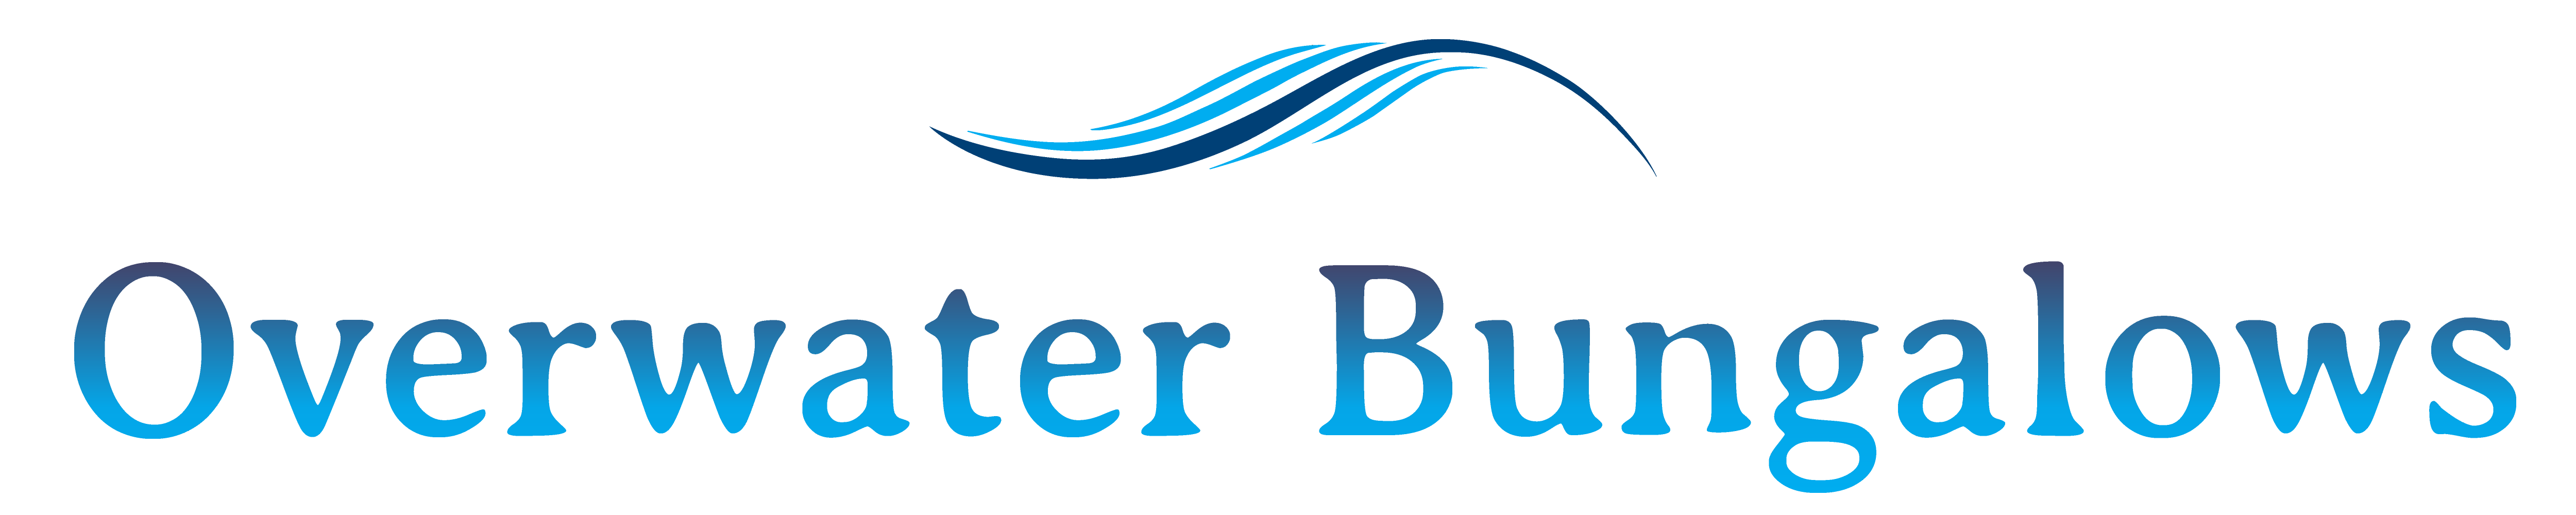 Overwater Bungalows Logo